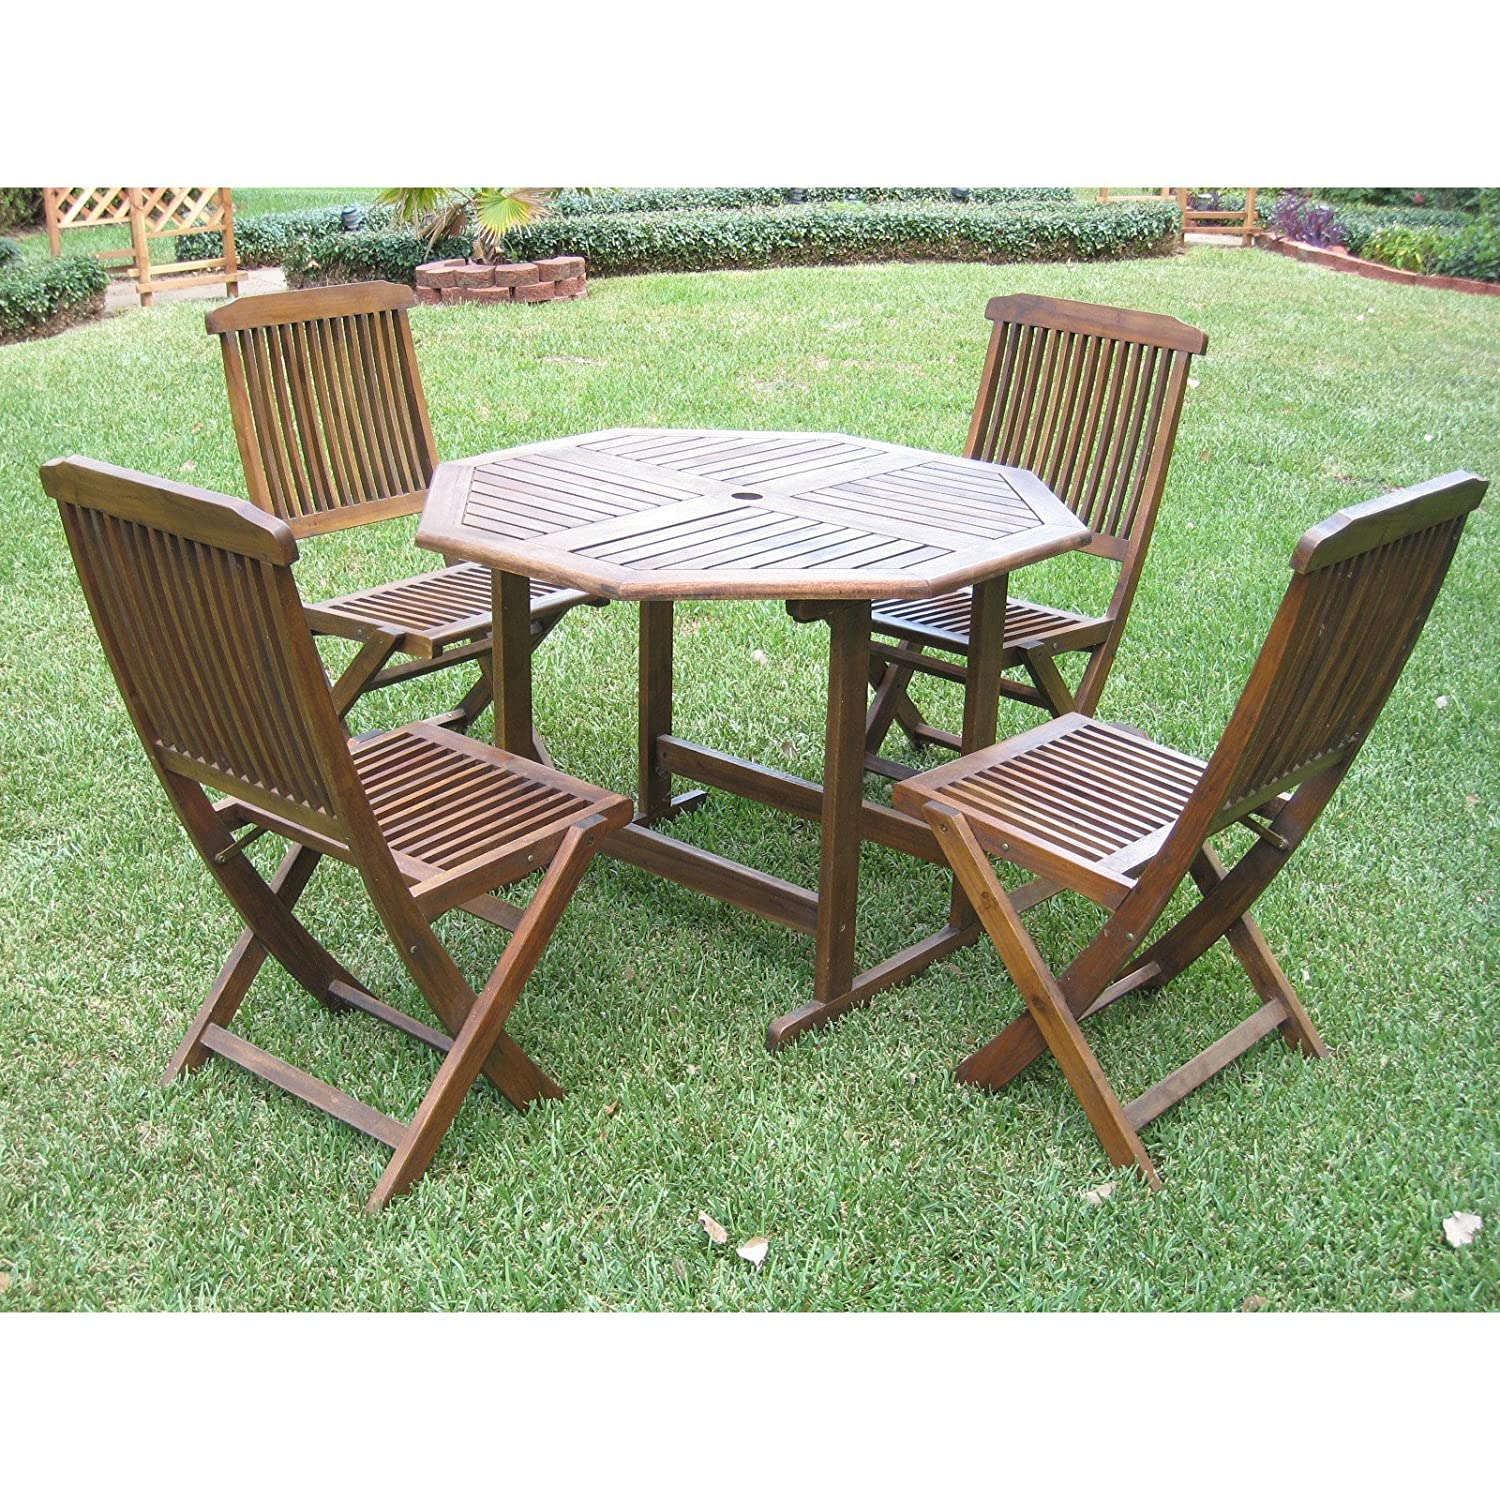 Amazon com patio furniture dining sethamilton outdoor constructed from durable acacia wood round patio dining set 5 piece garden outdoor